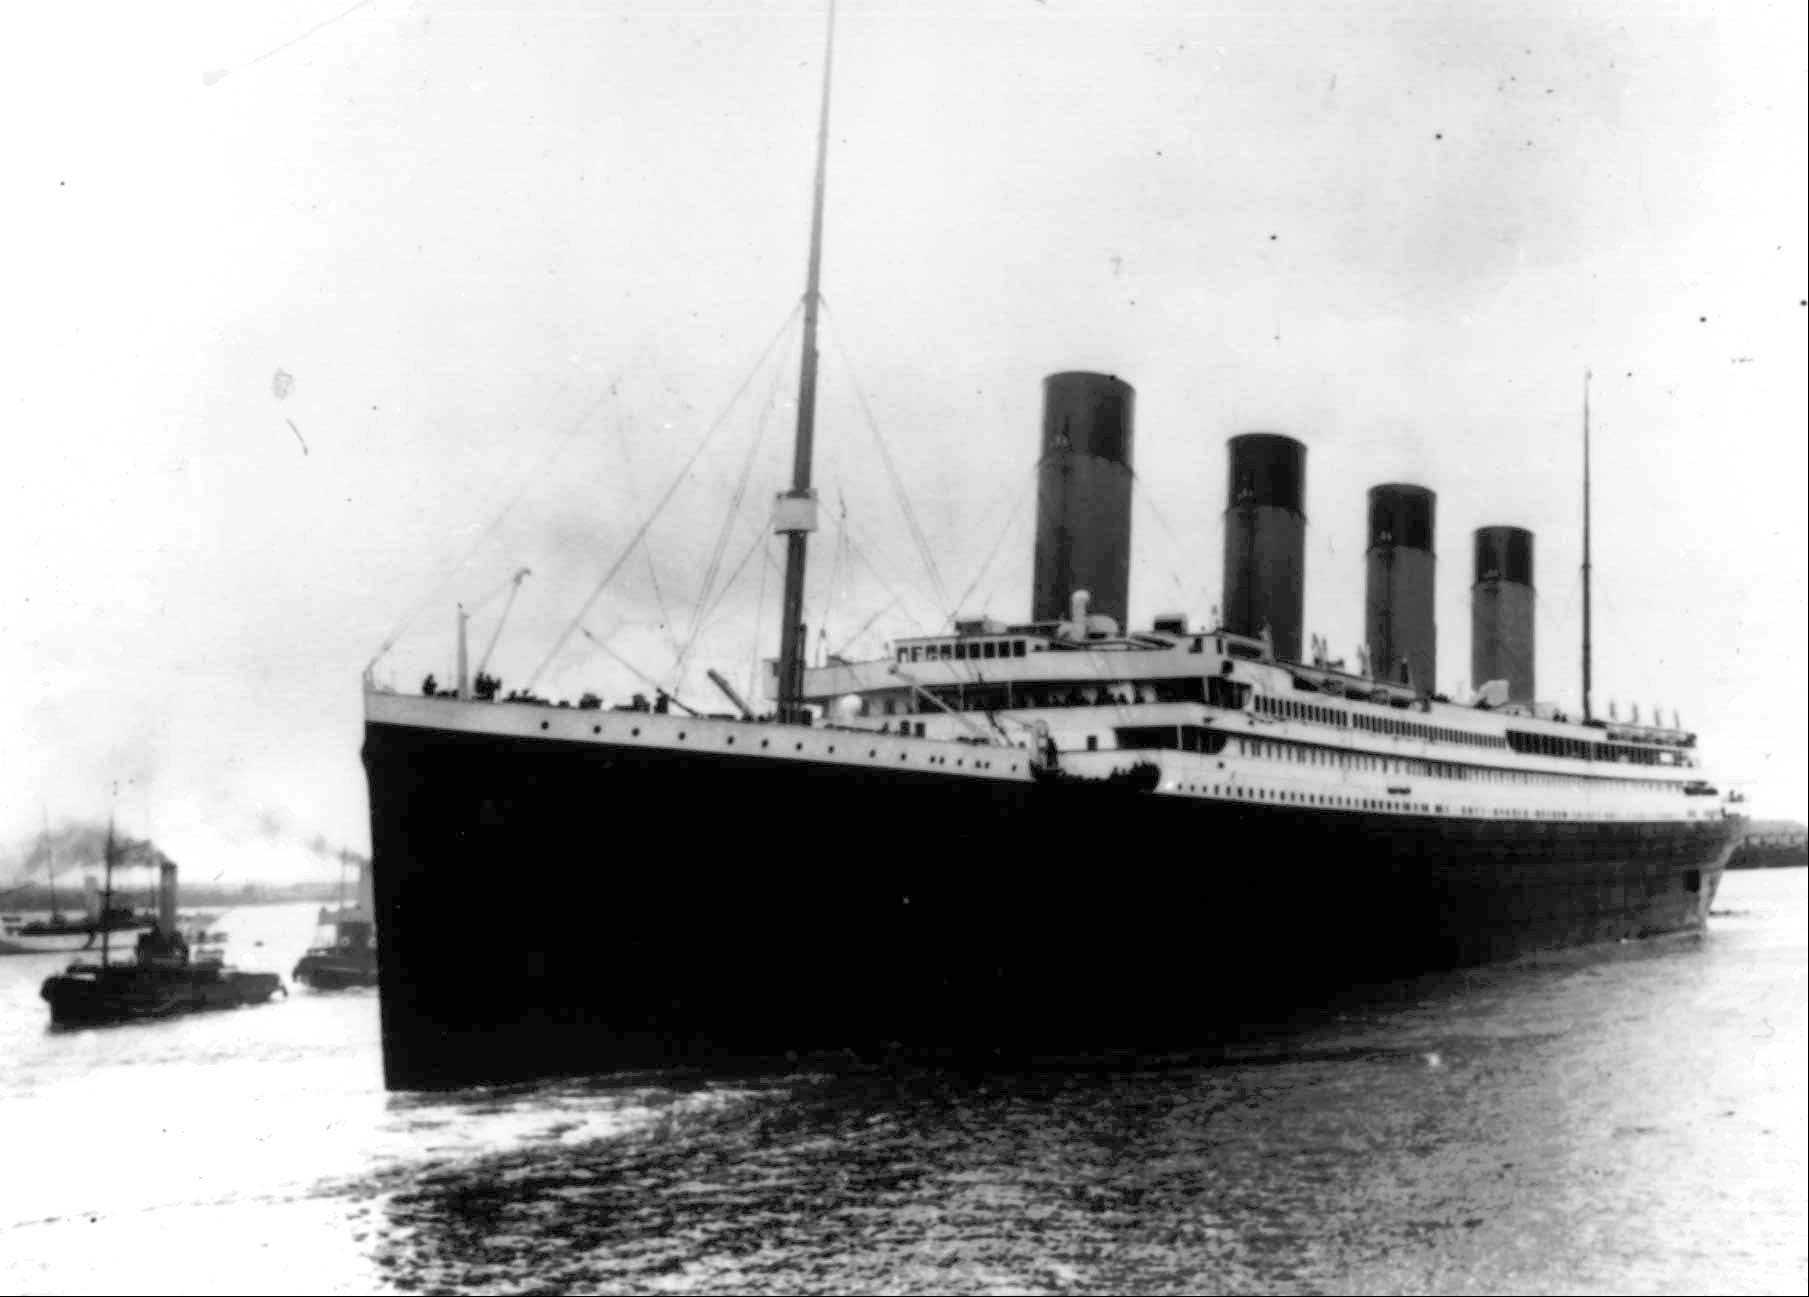 The Titanic is pictured on its maiden voyage across the Atlantic Ocean.